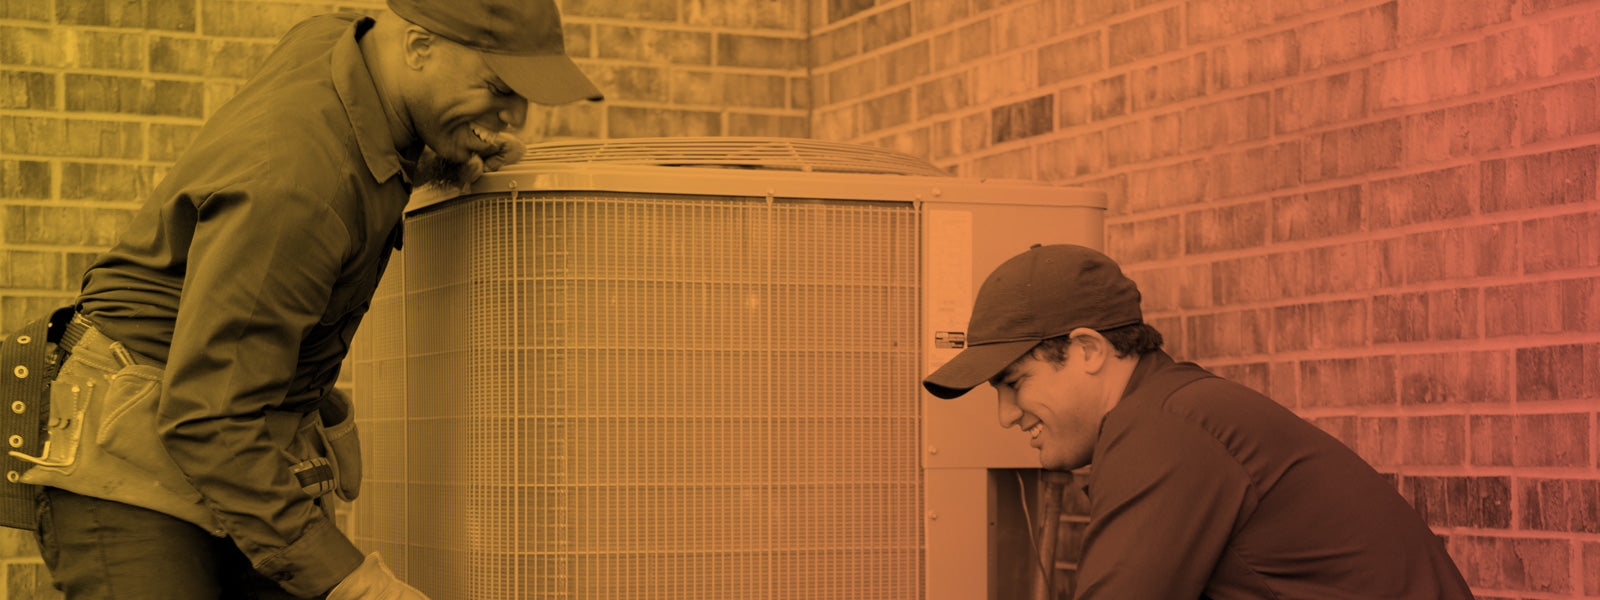 Selecting a contractor to install your HVAC unit